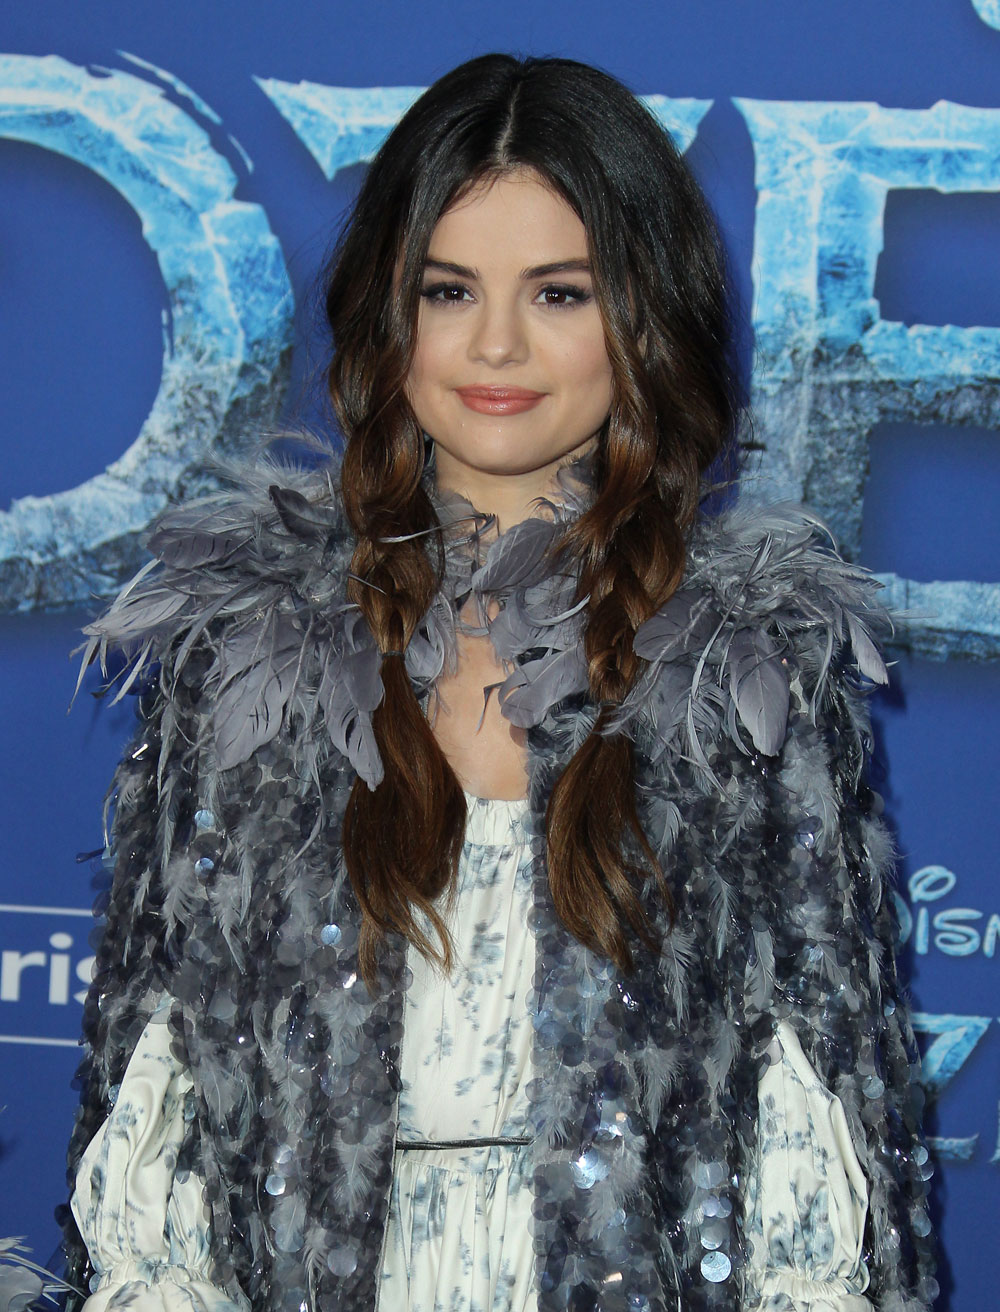 Selena Gomez: being body shamed for lupus weight gain 'really messed me up'